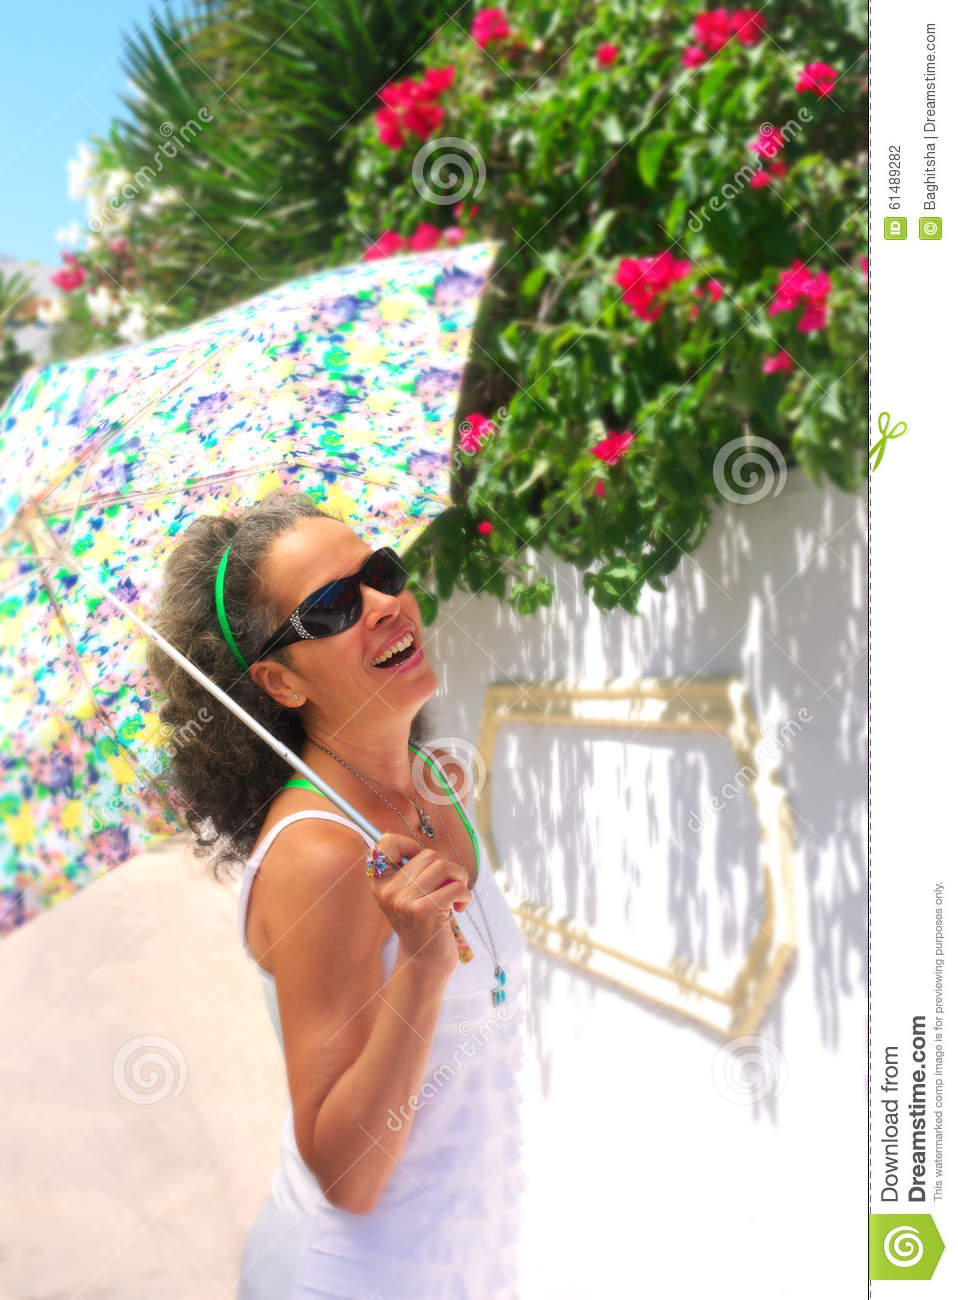 happy mature woman with umbrella stock photo - image of sunny